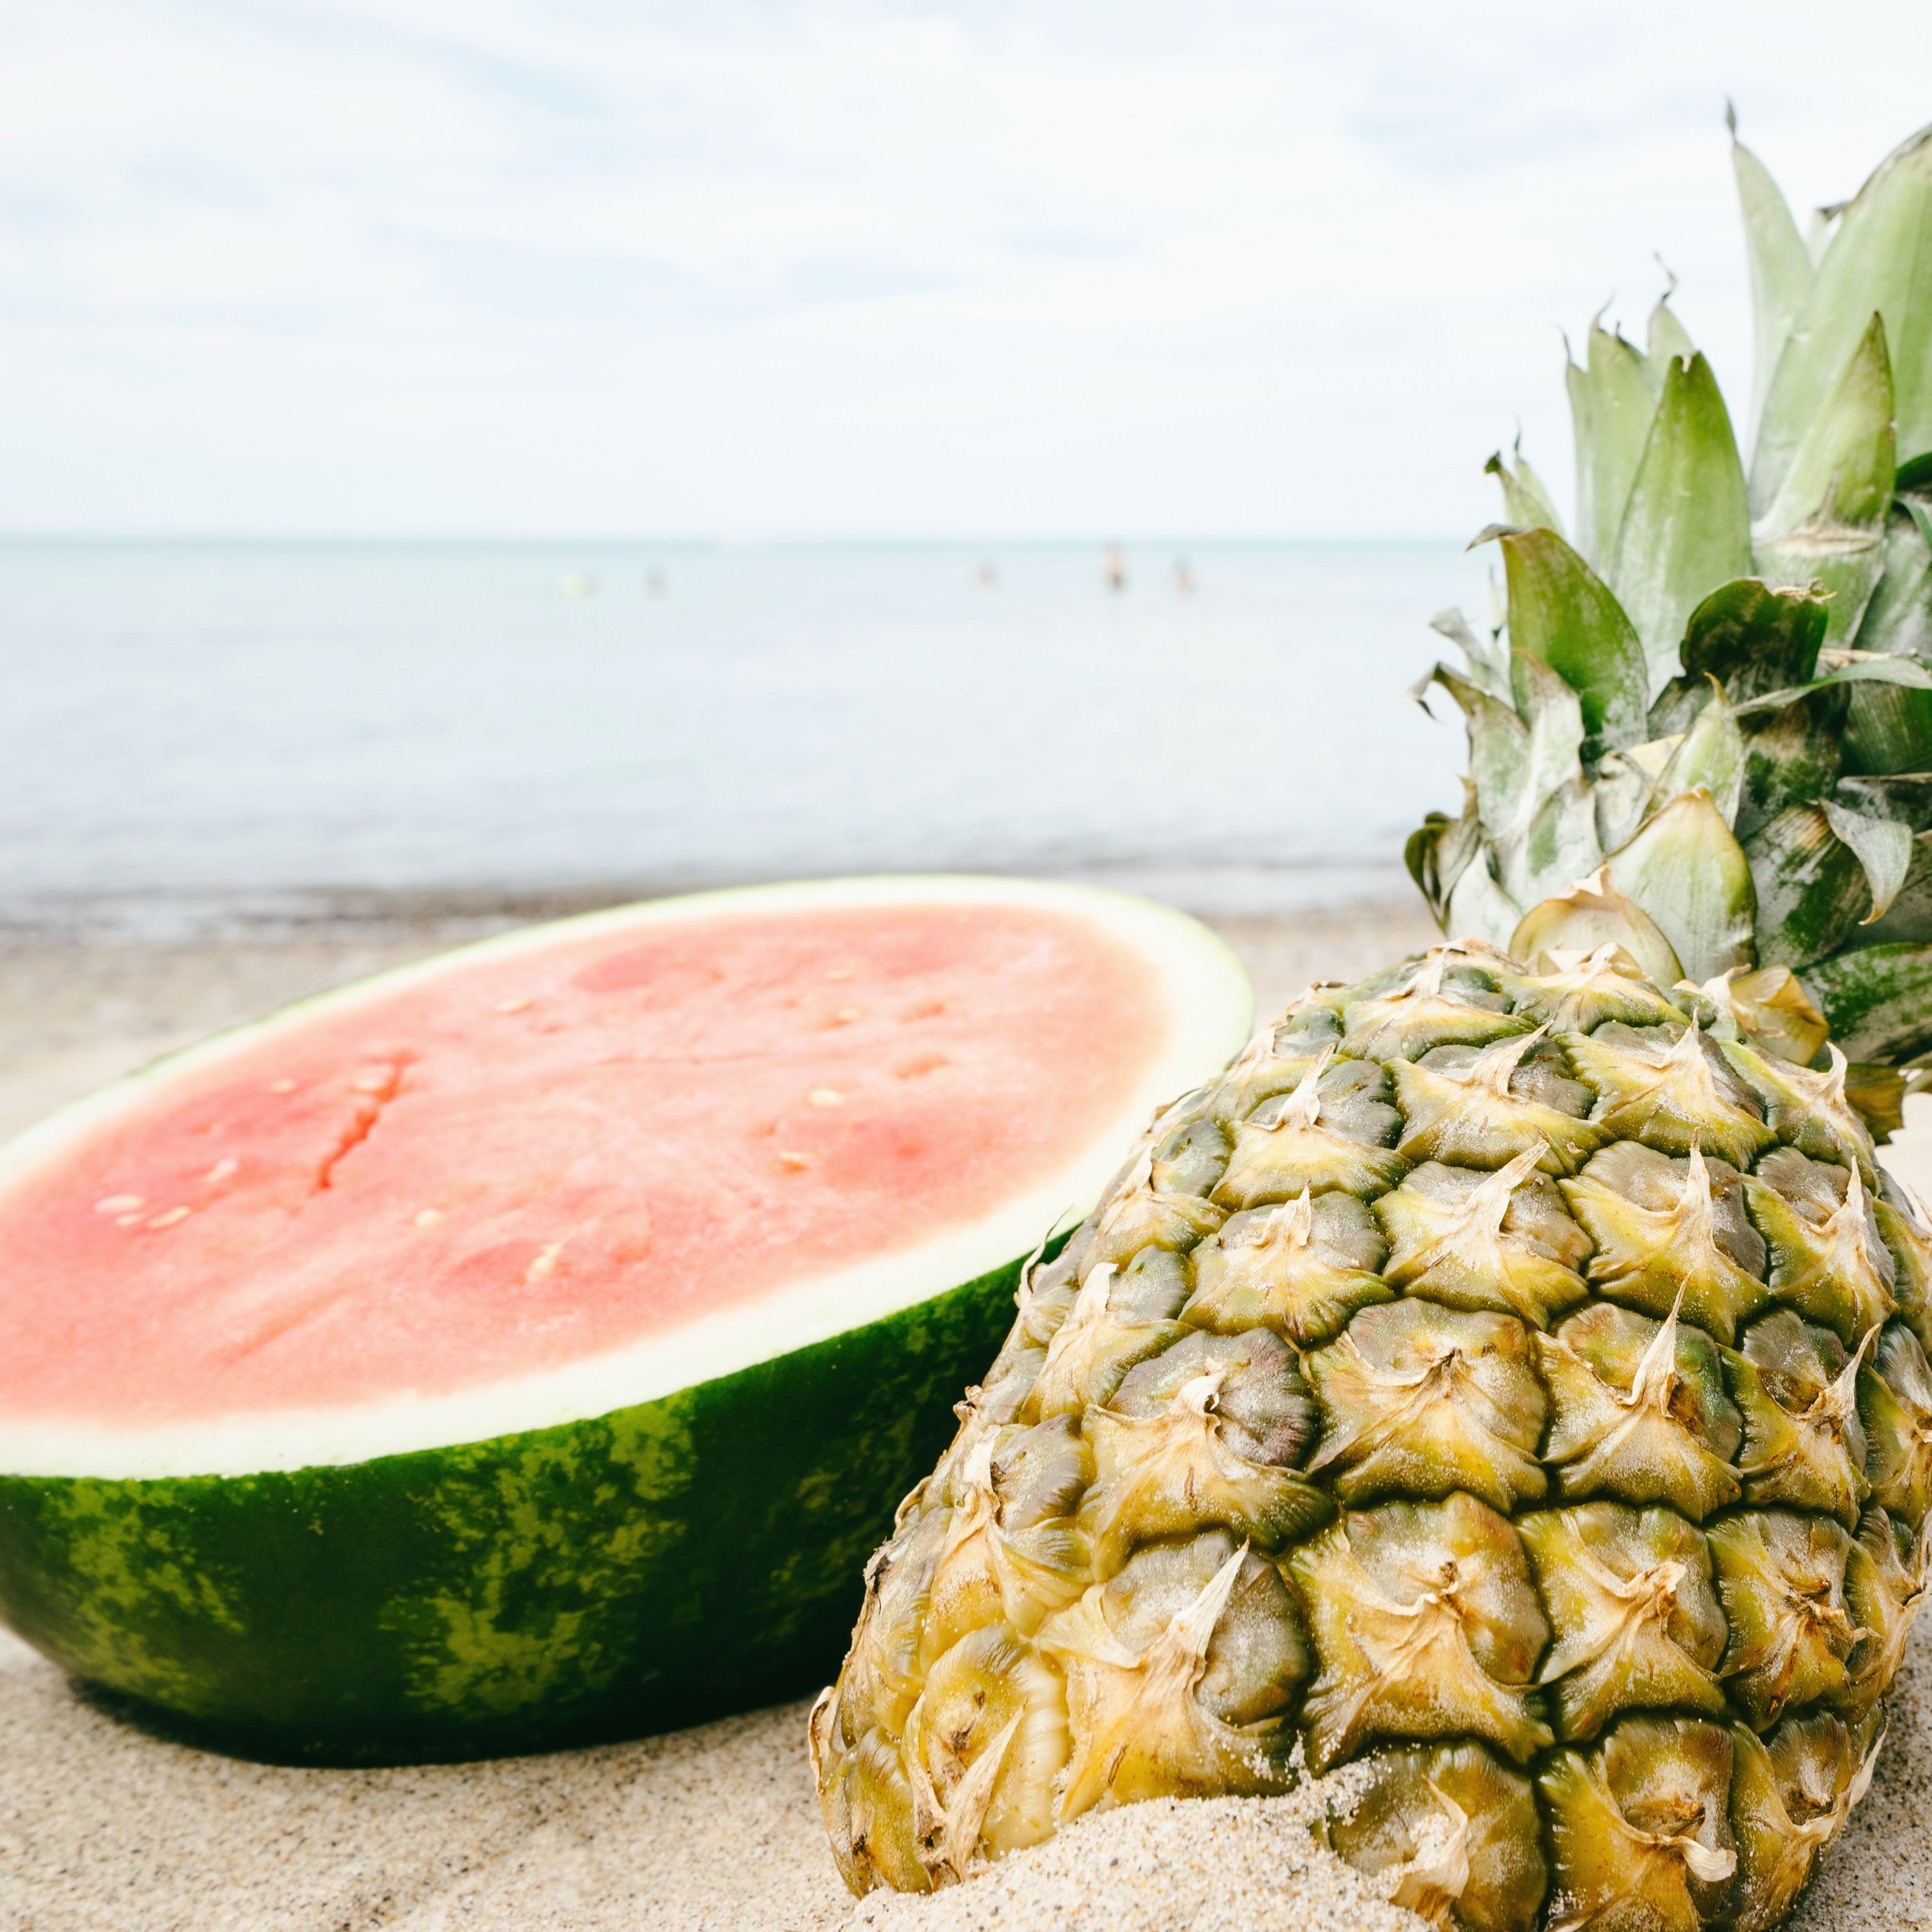 Sliced Watermelon and Pineapple Near Seashore